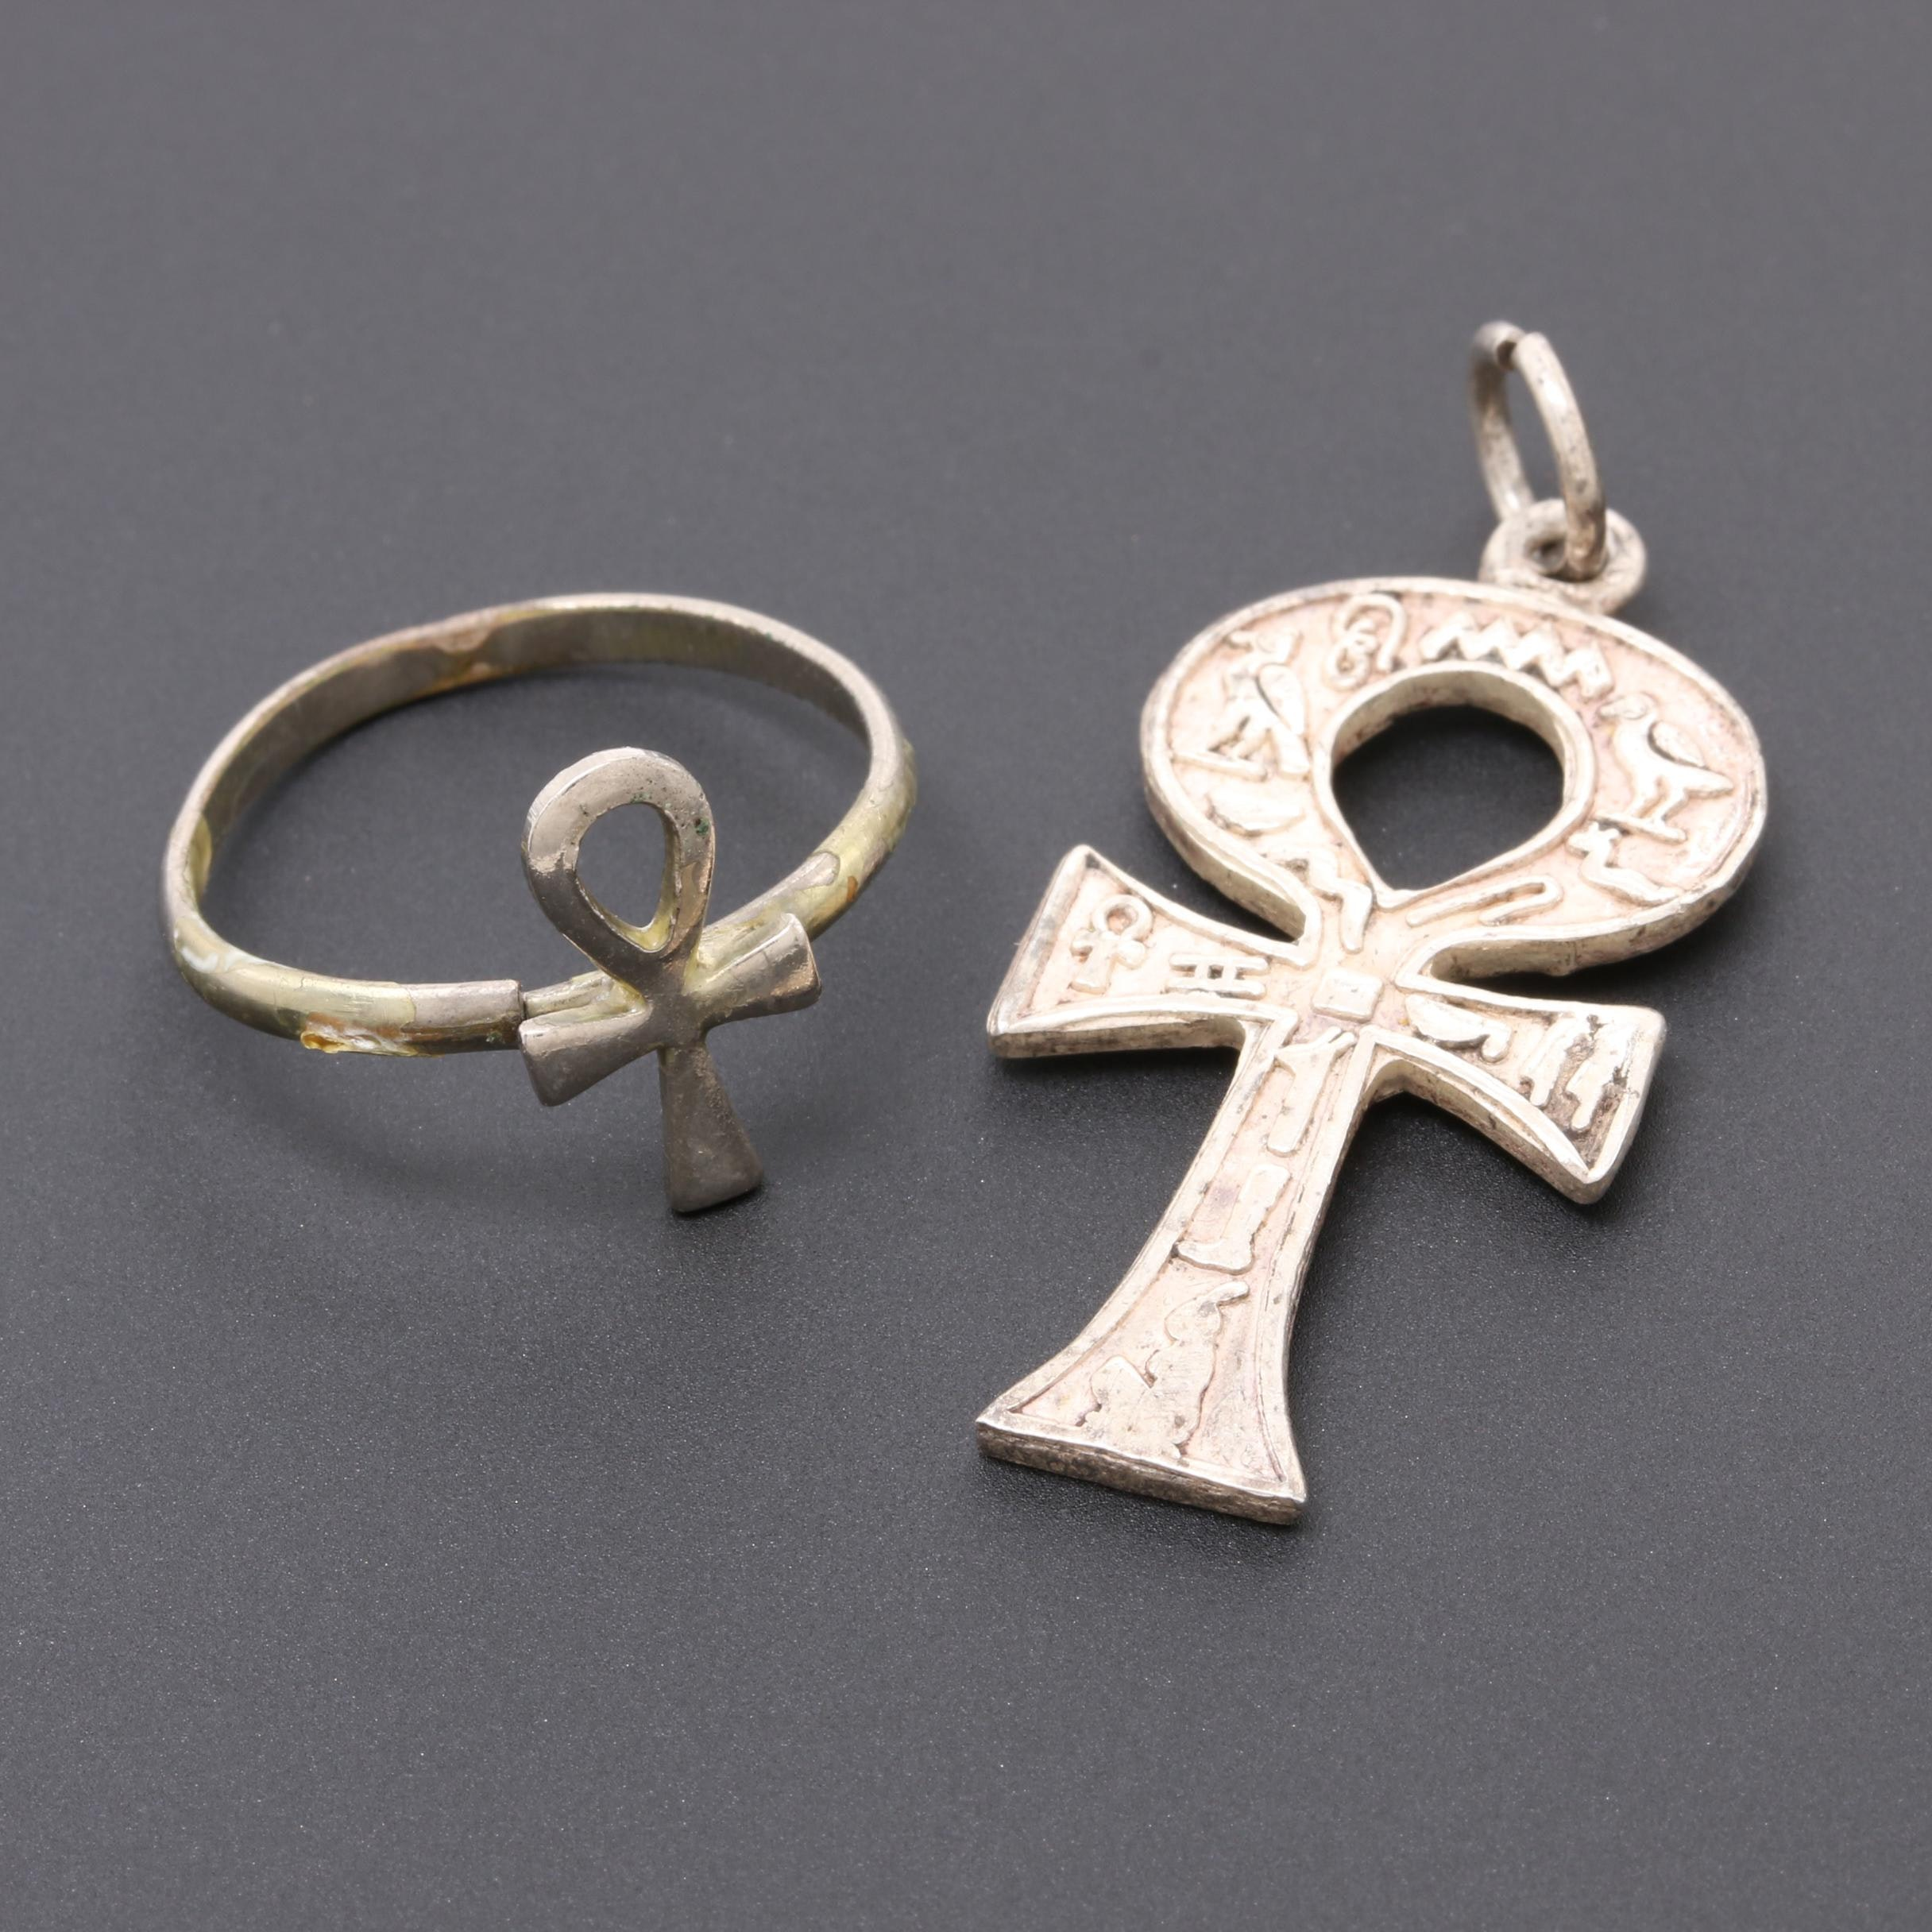 850 Silver Hieroglyphic Ankh Pendant and Base Metal Ring